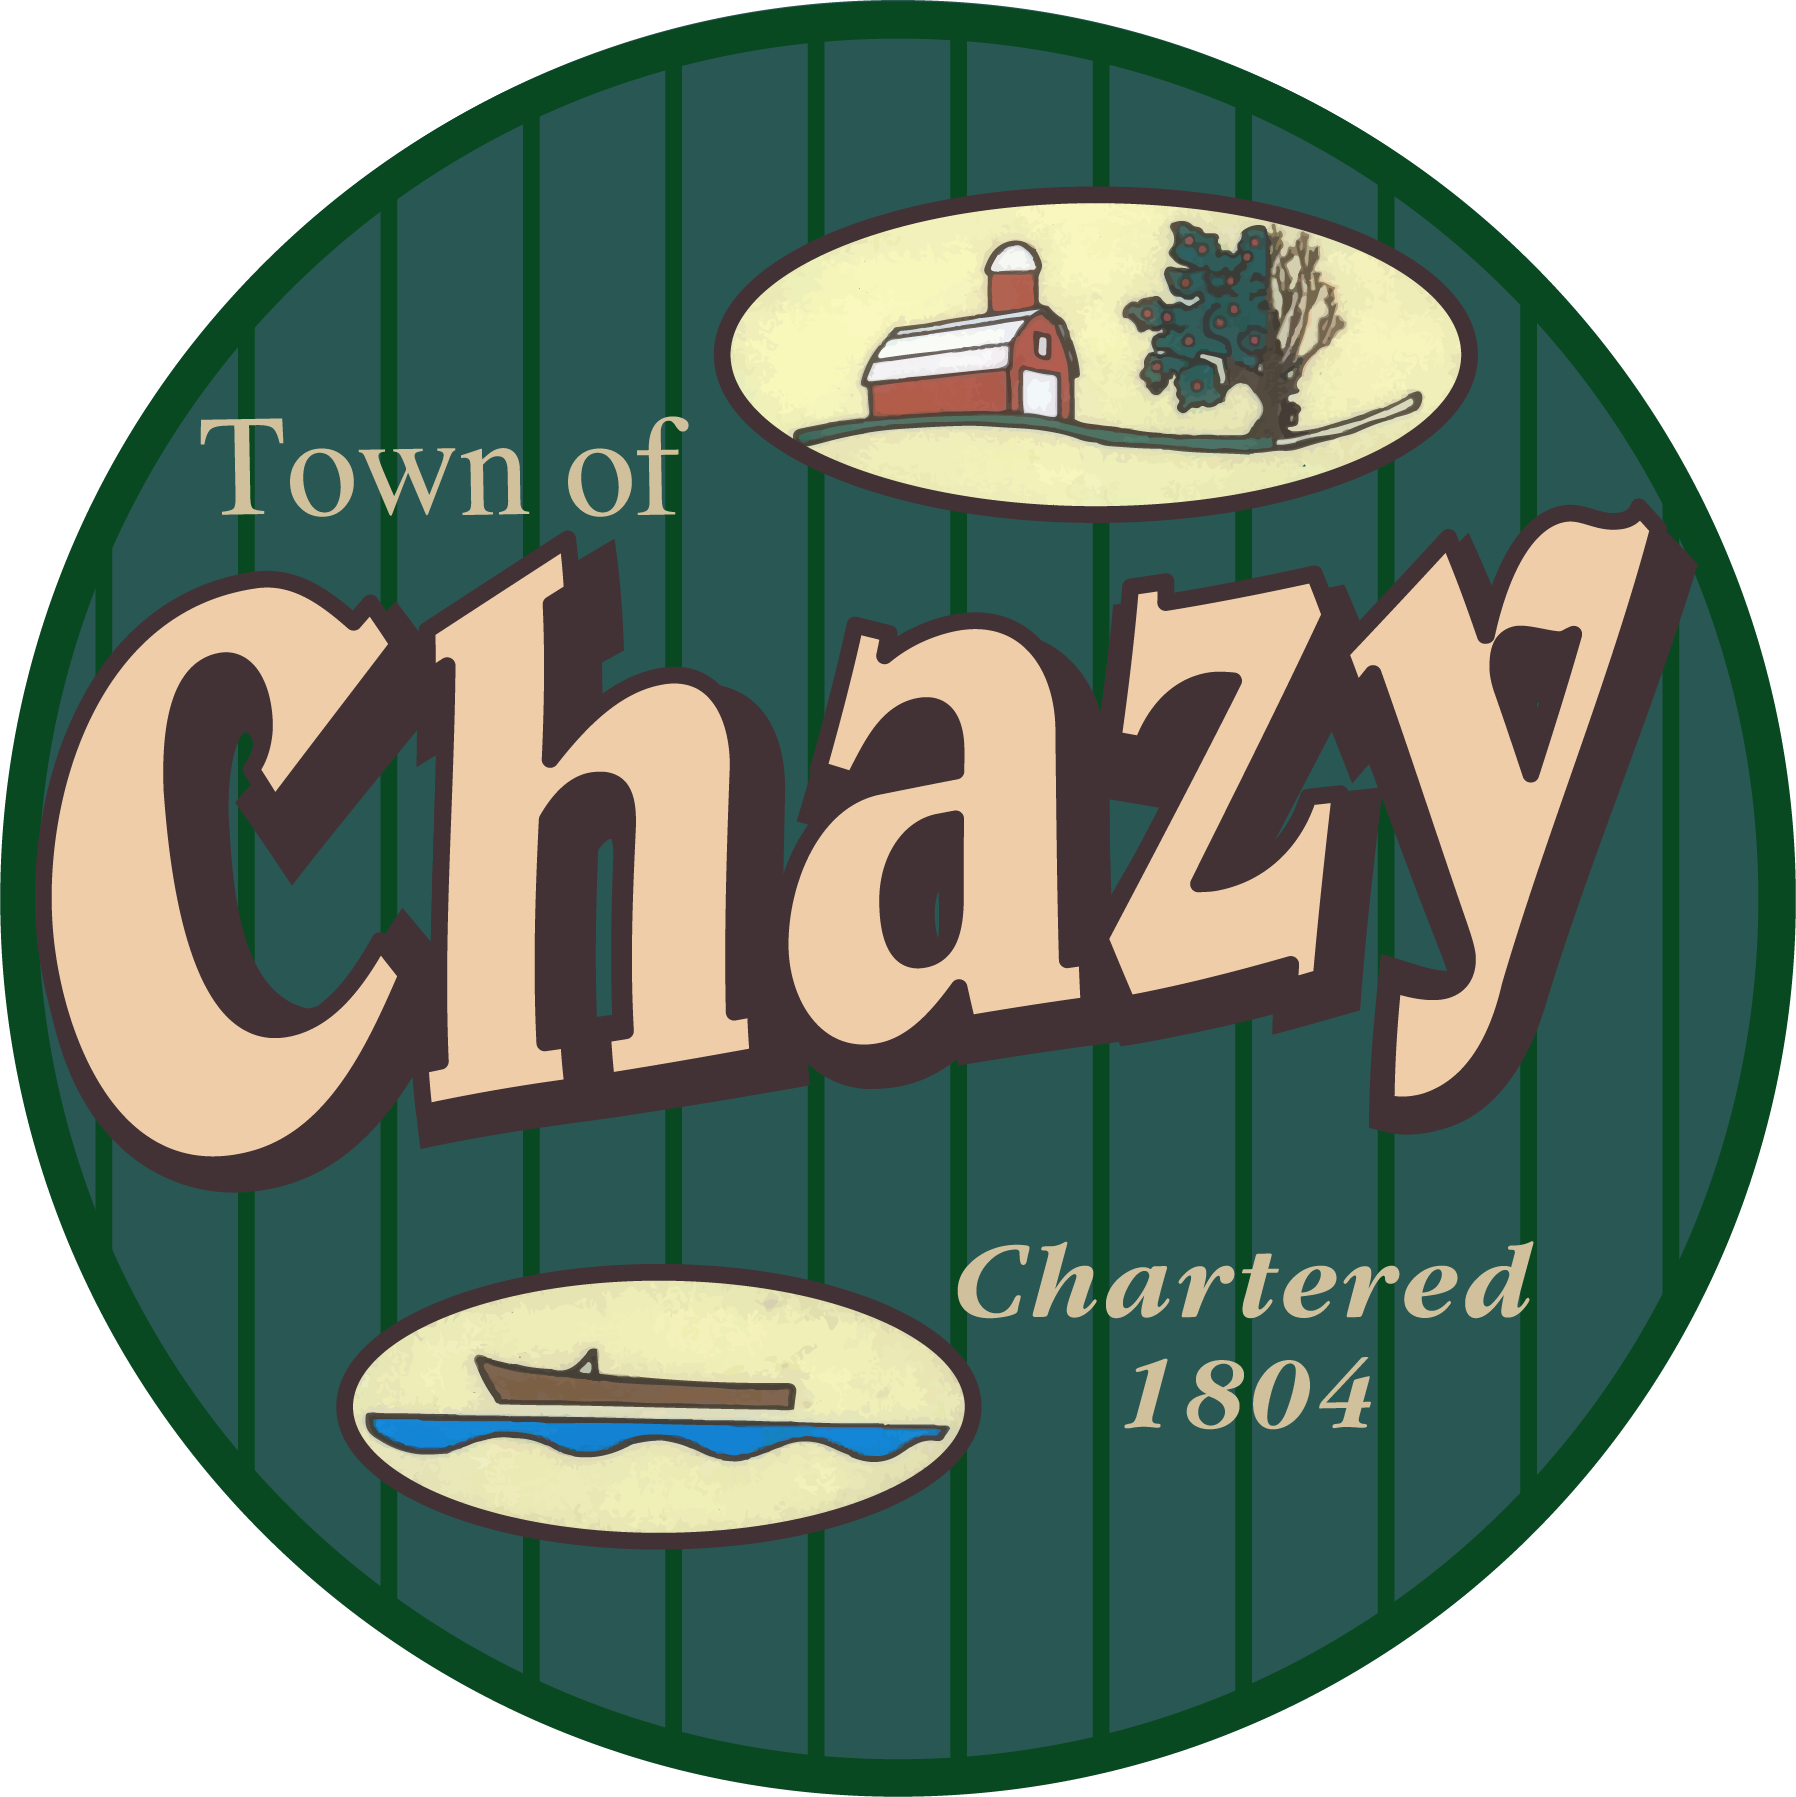 Town of Chazy